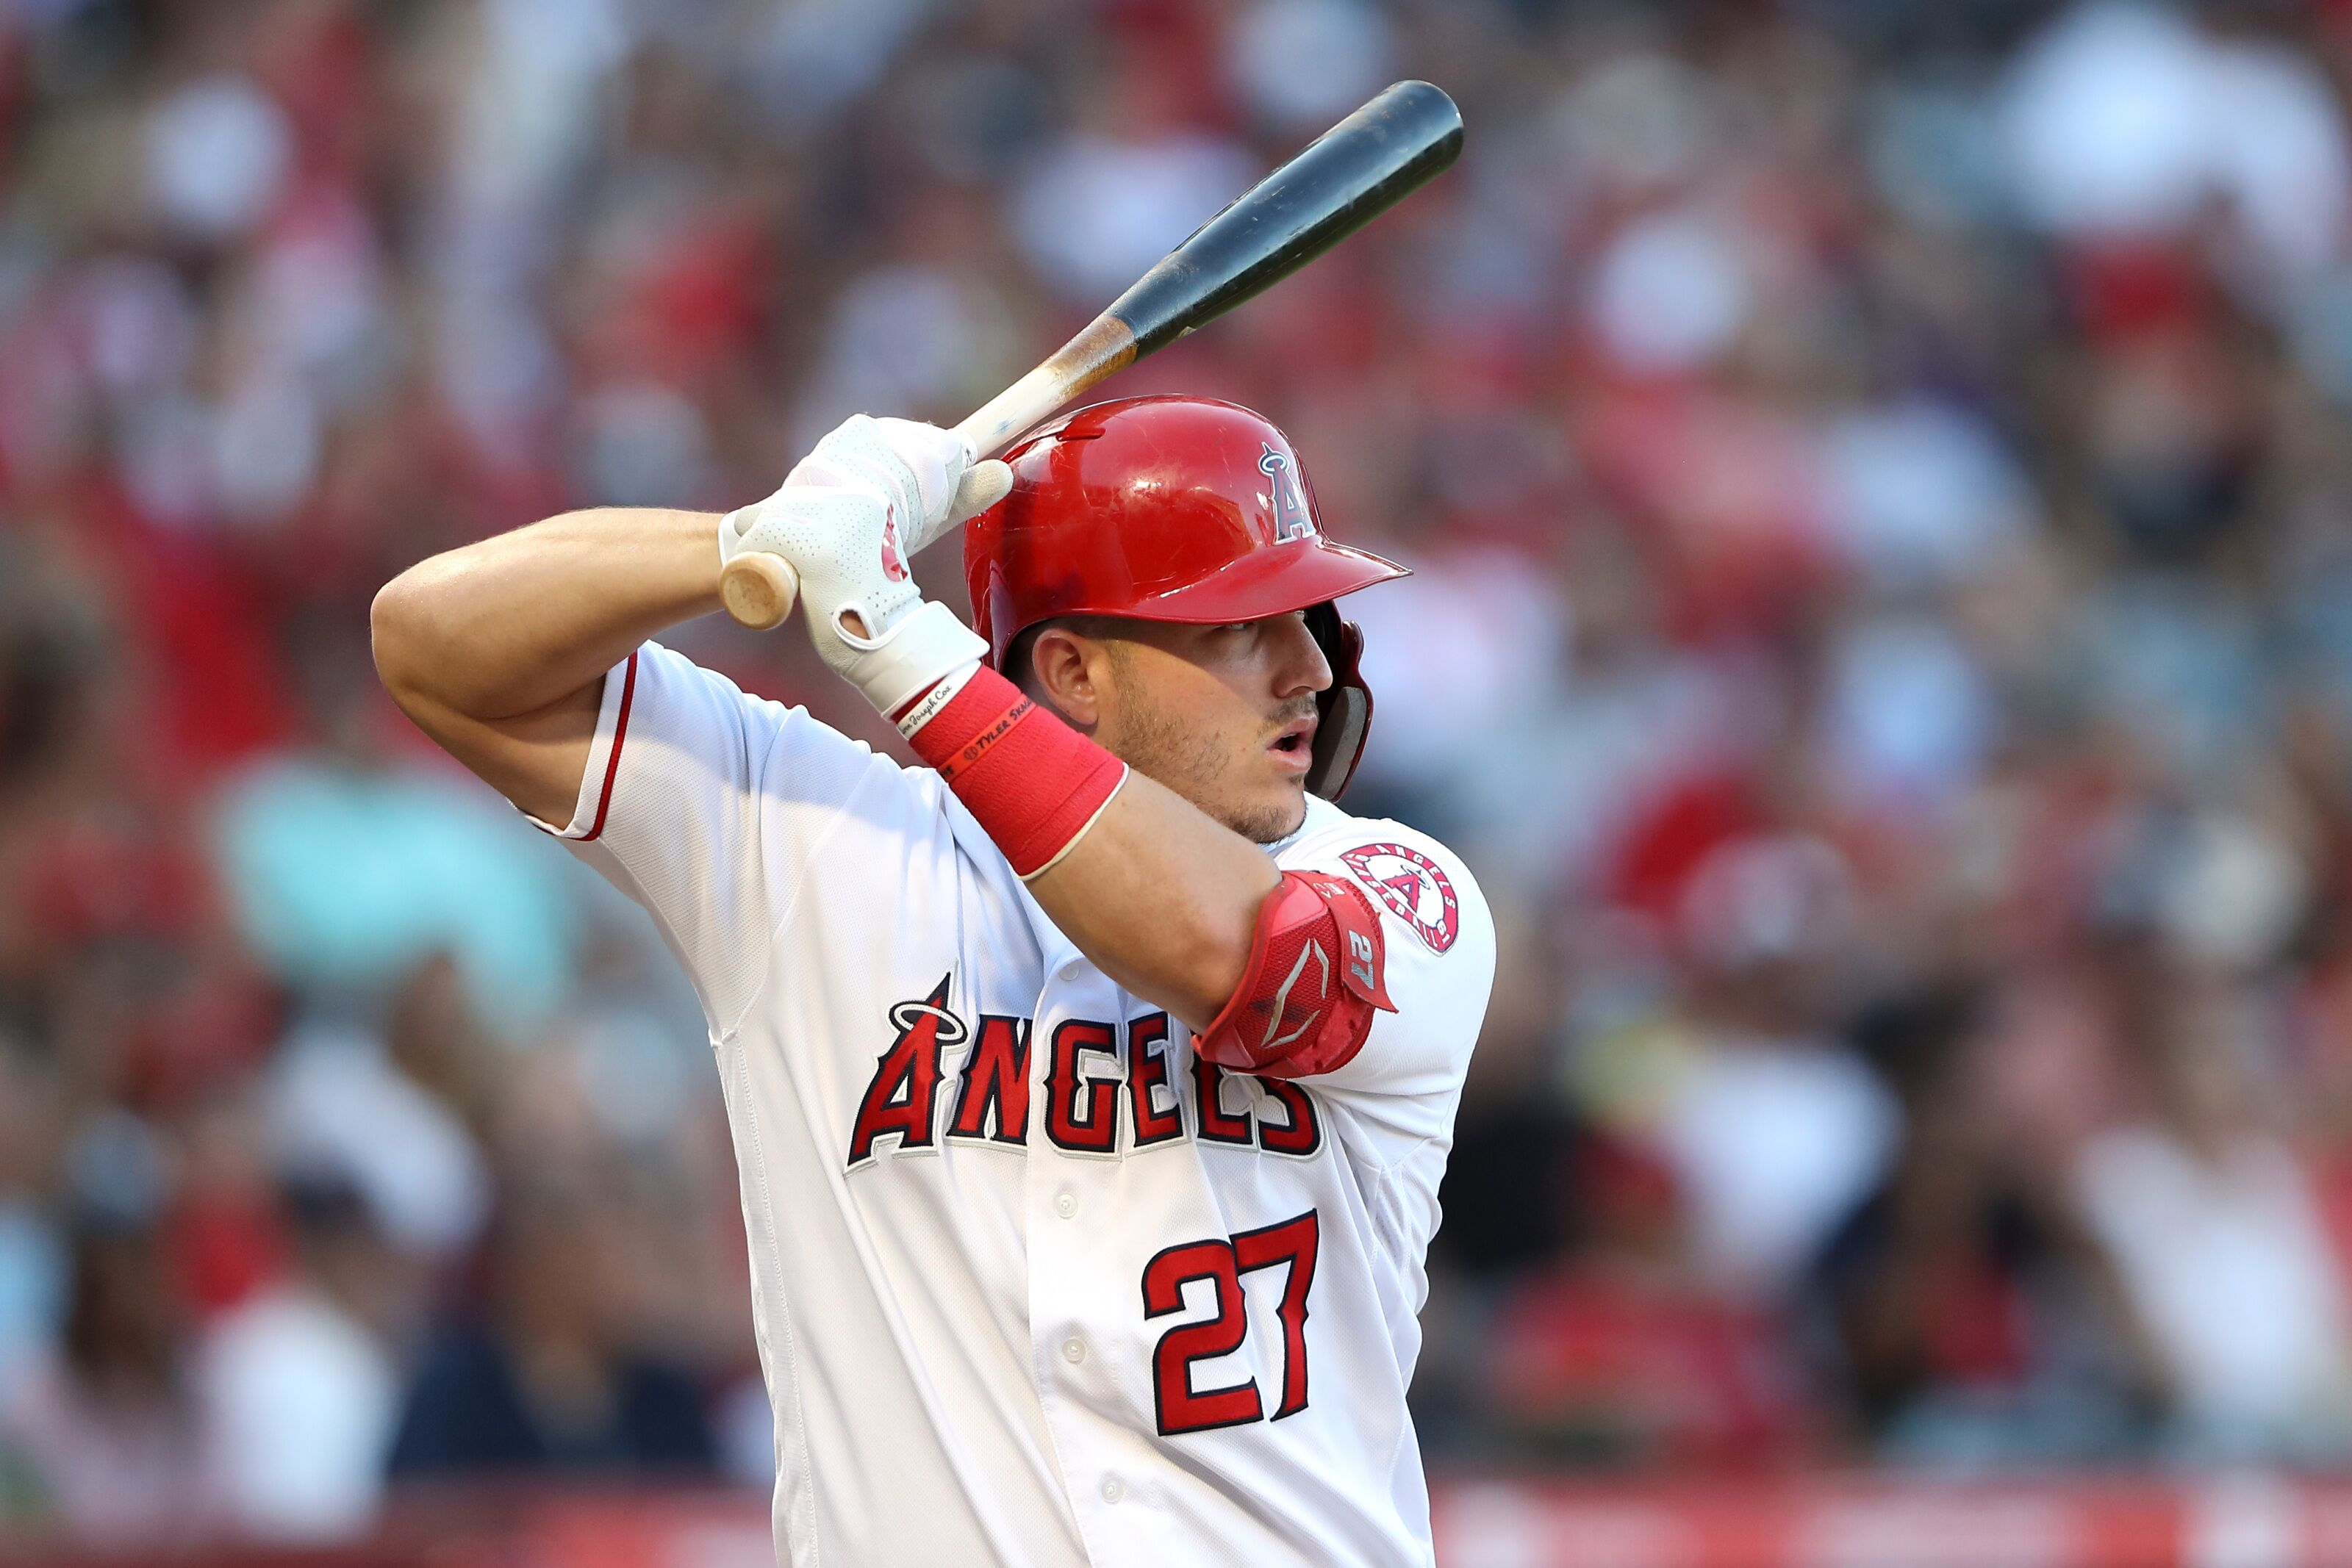 Los Angeles Angels: There is a legitimate case for Mike Trout to lose MVP